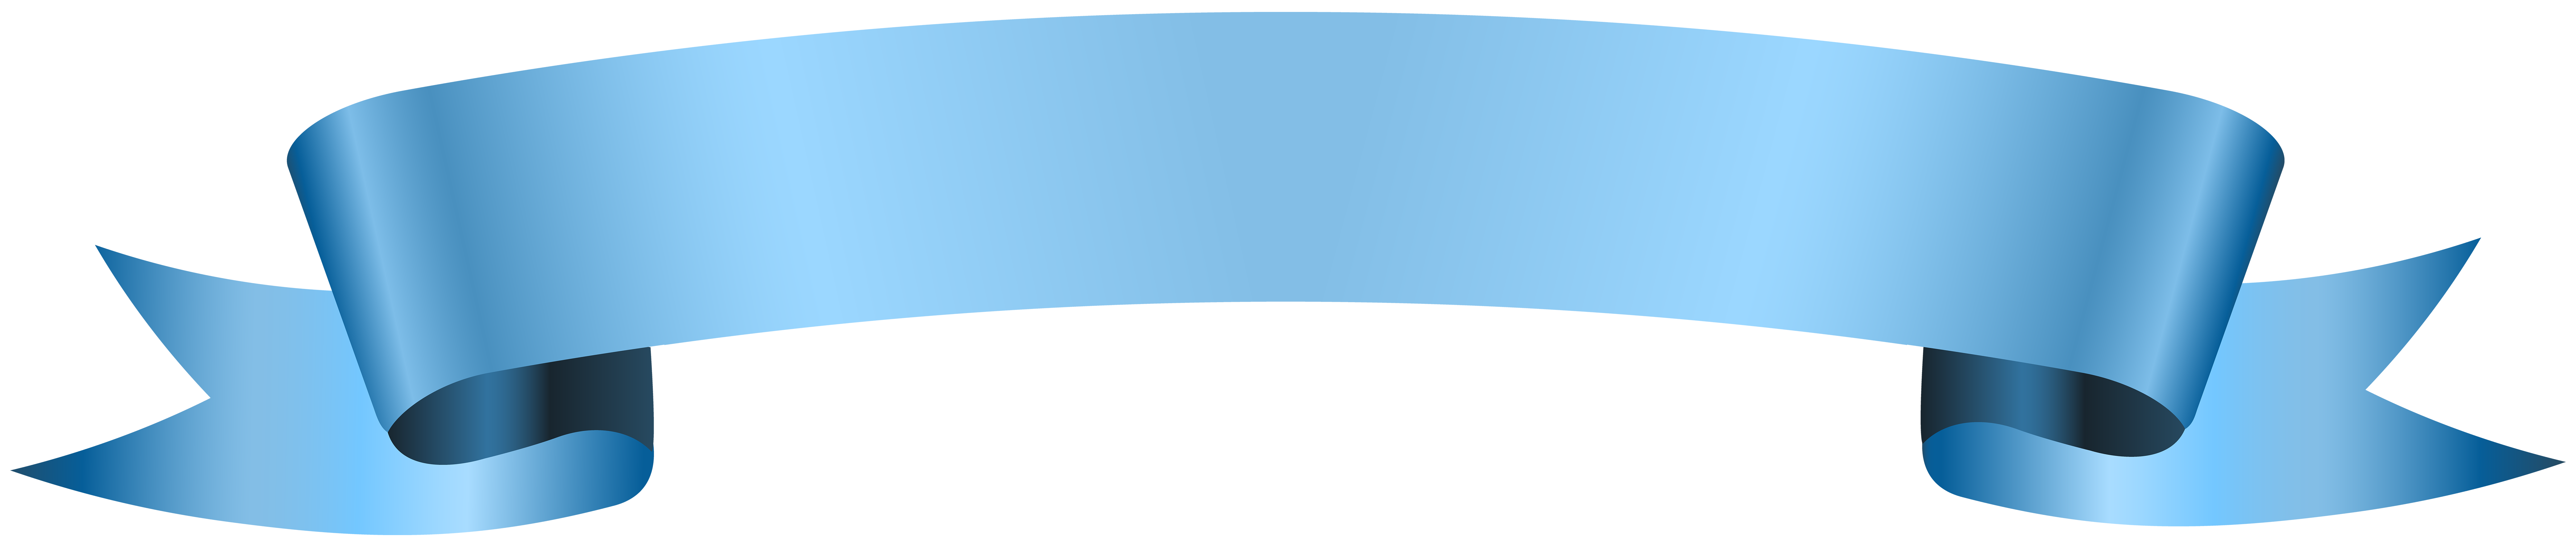 Blue ribbon banner png. Transparent clip ar gallery